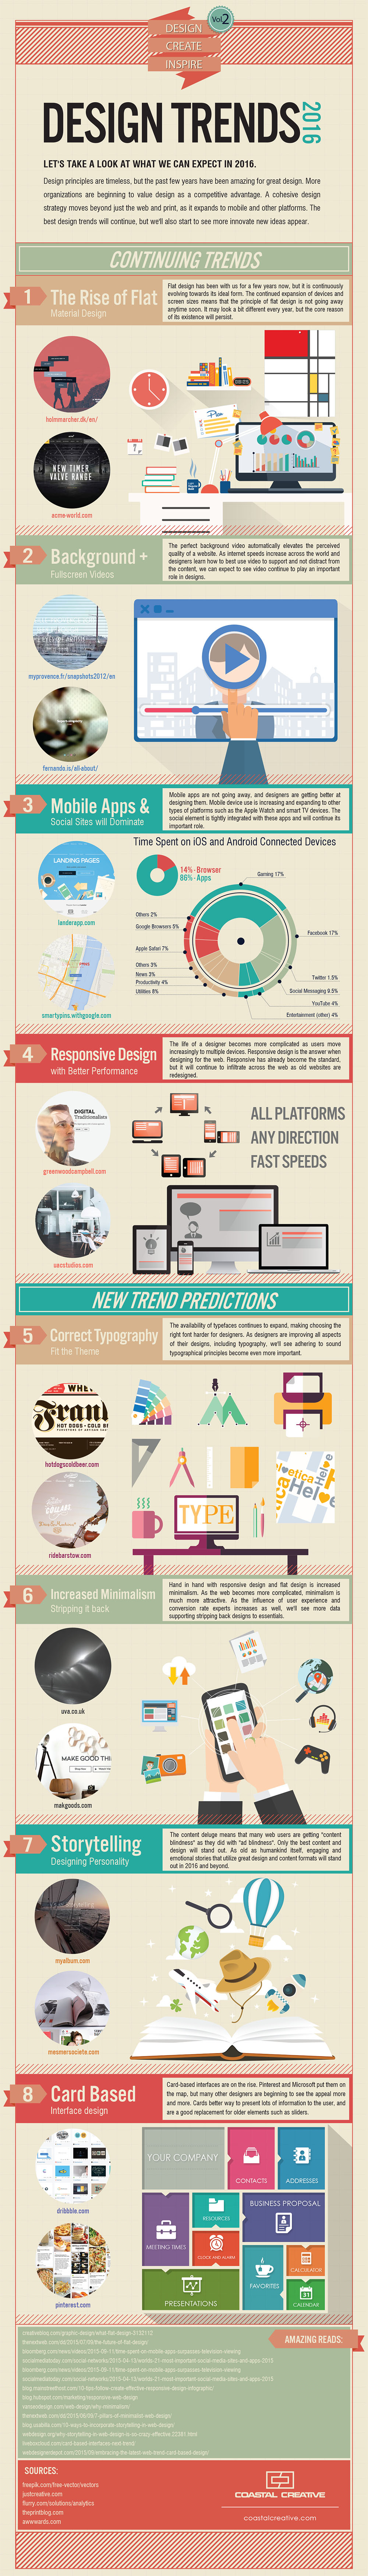 Design trends to watch infographic